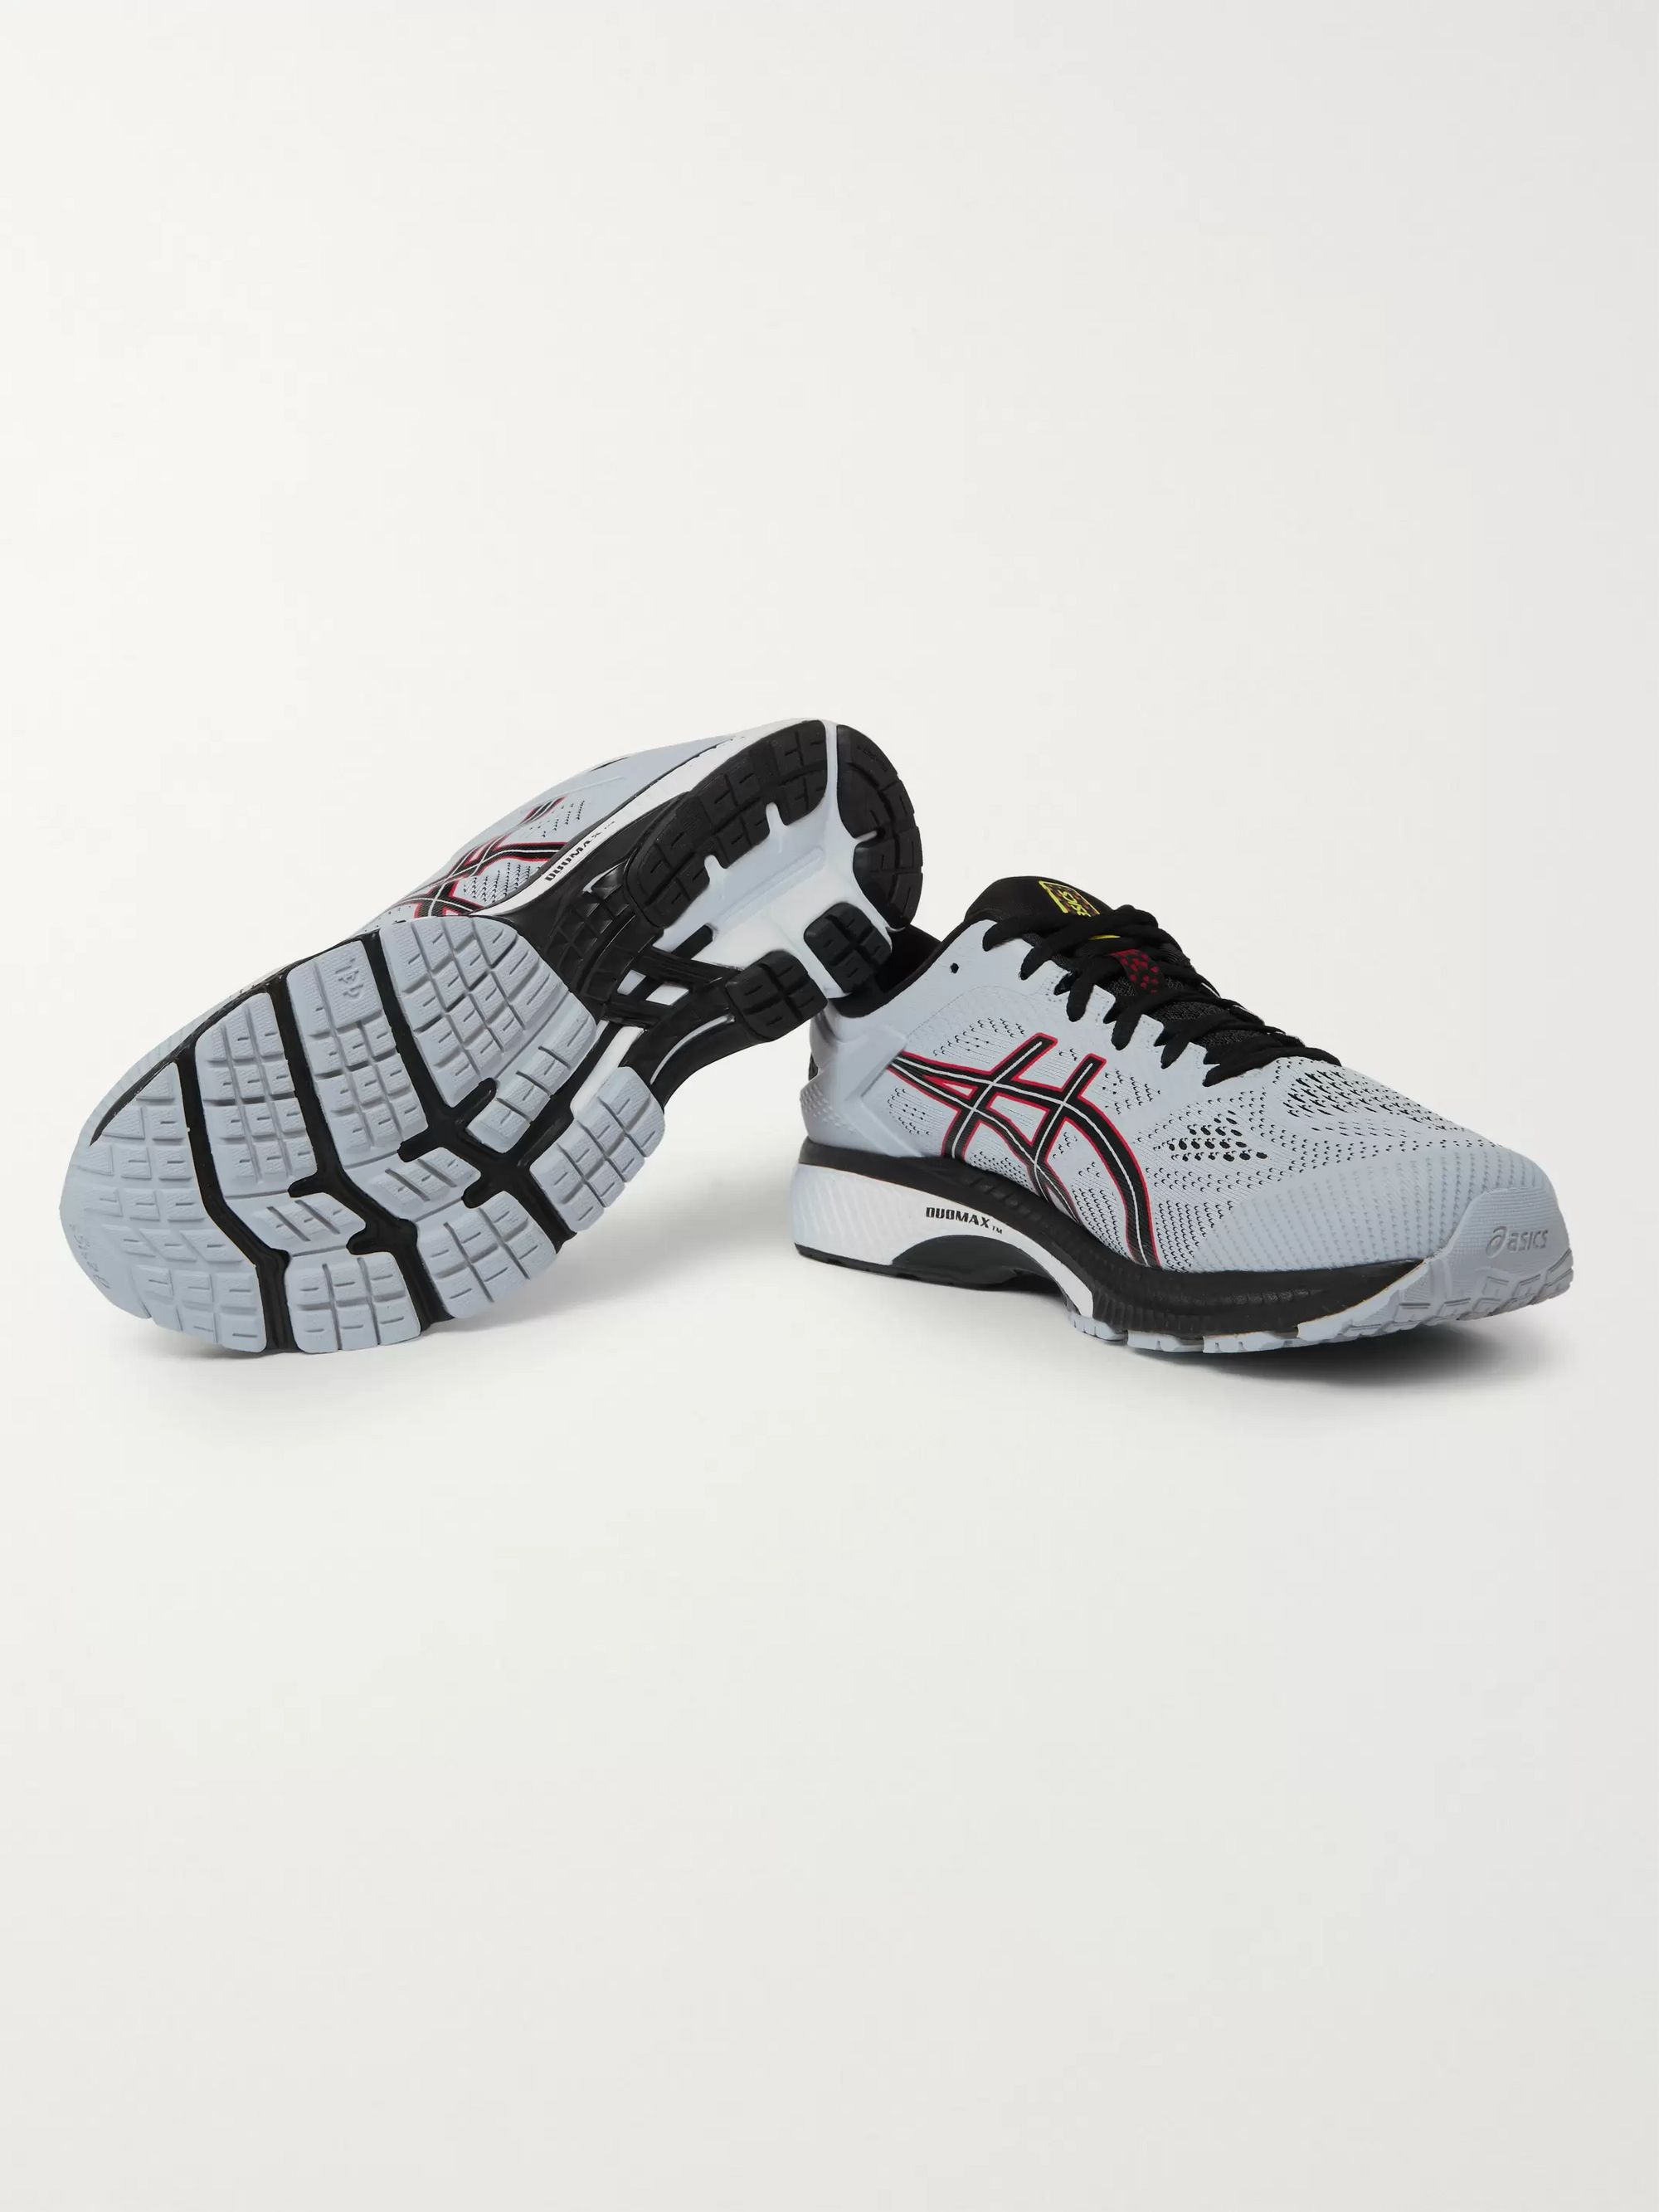 ASICS Gel-Kayano 26 Rubber-Trimmed Mesh Running Sneakers